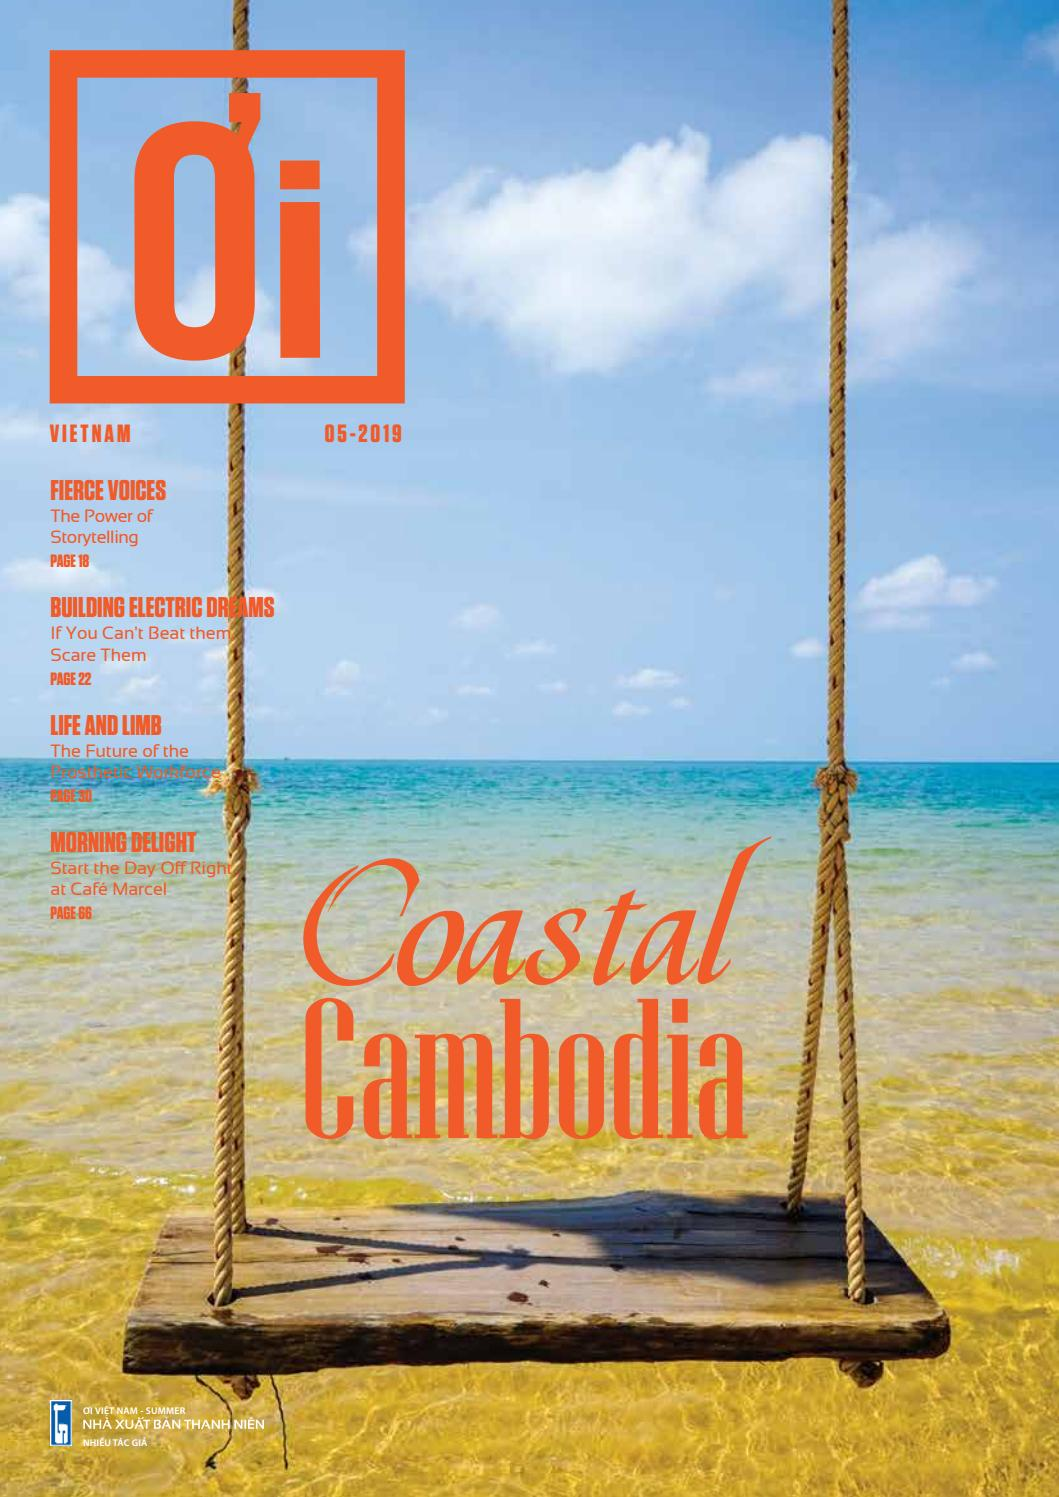 e486fb30ec Oi Vietnam issue # 71 (May 2019) by Oi Vietnam - issuu